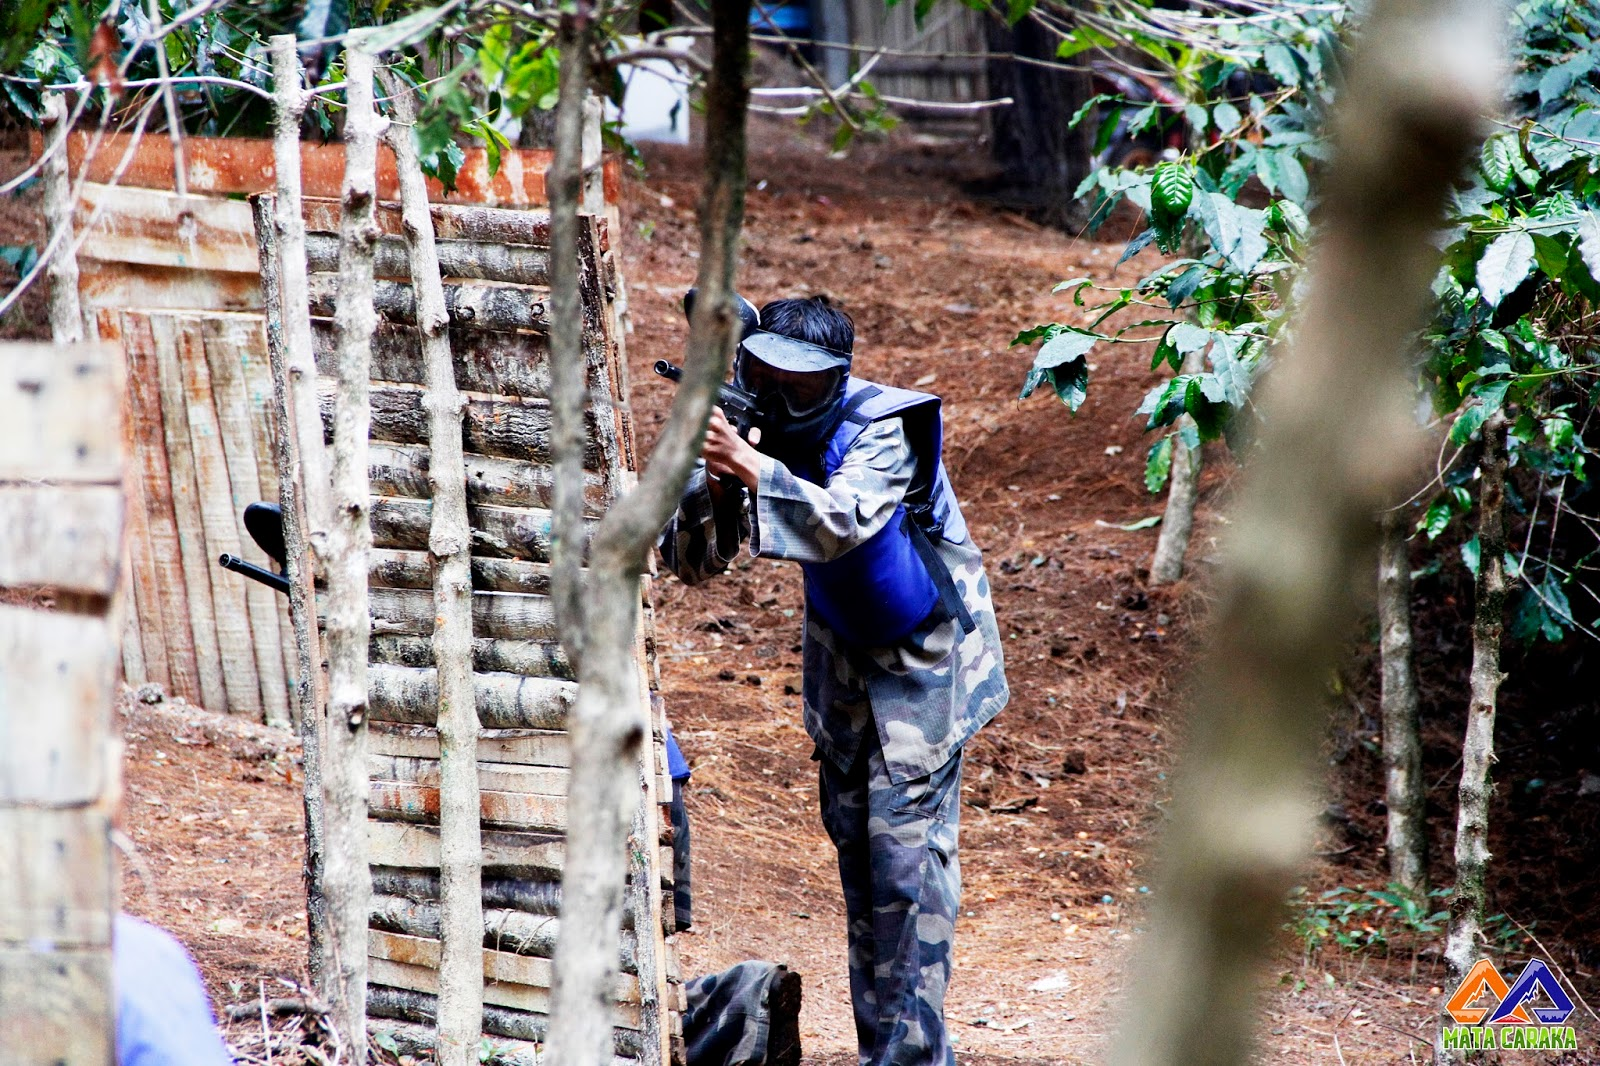 OUTBOUND PAINTBALL PANGALENGAN (1)